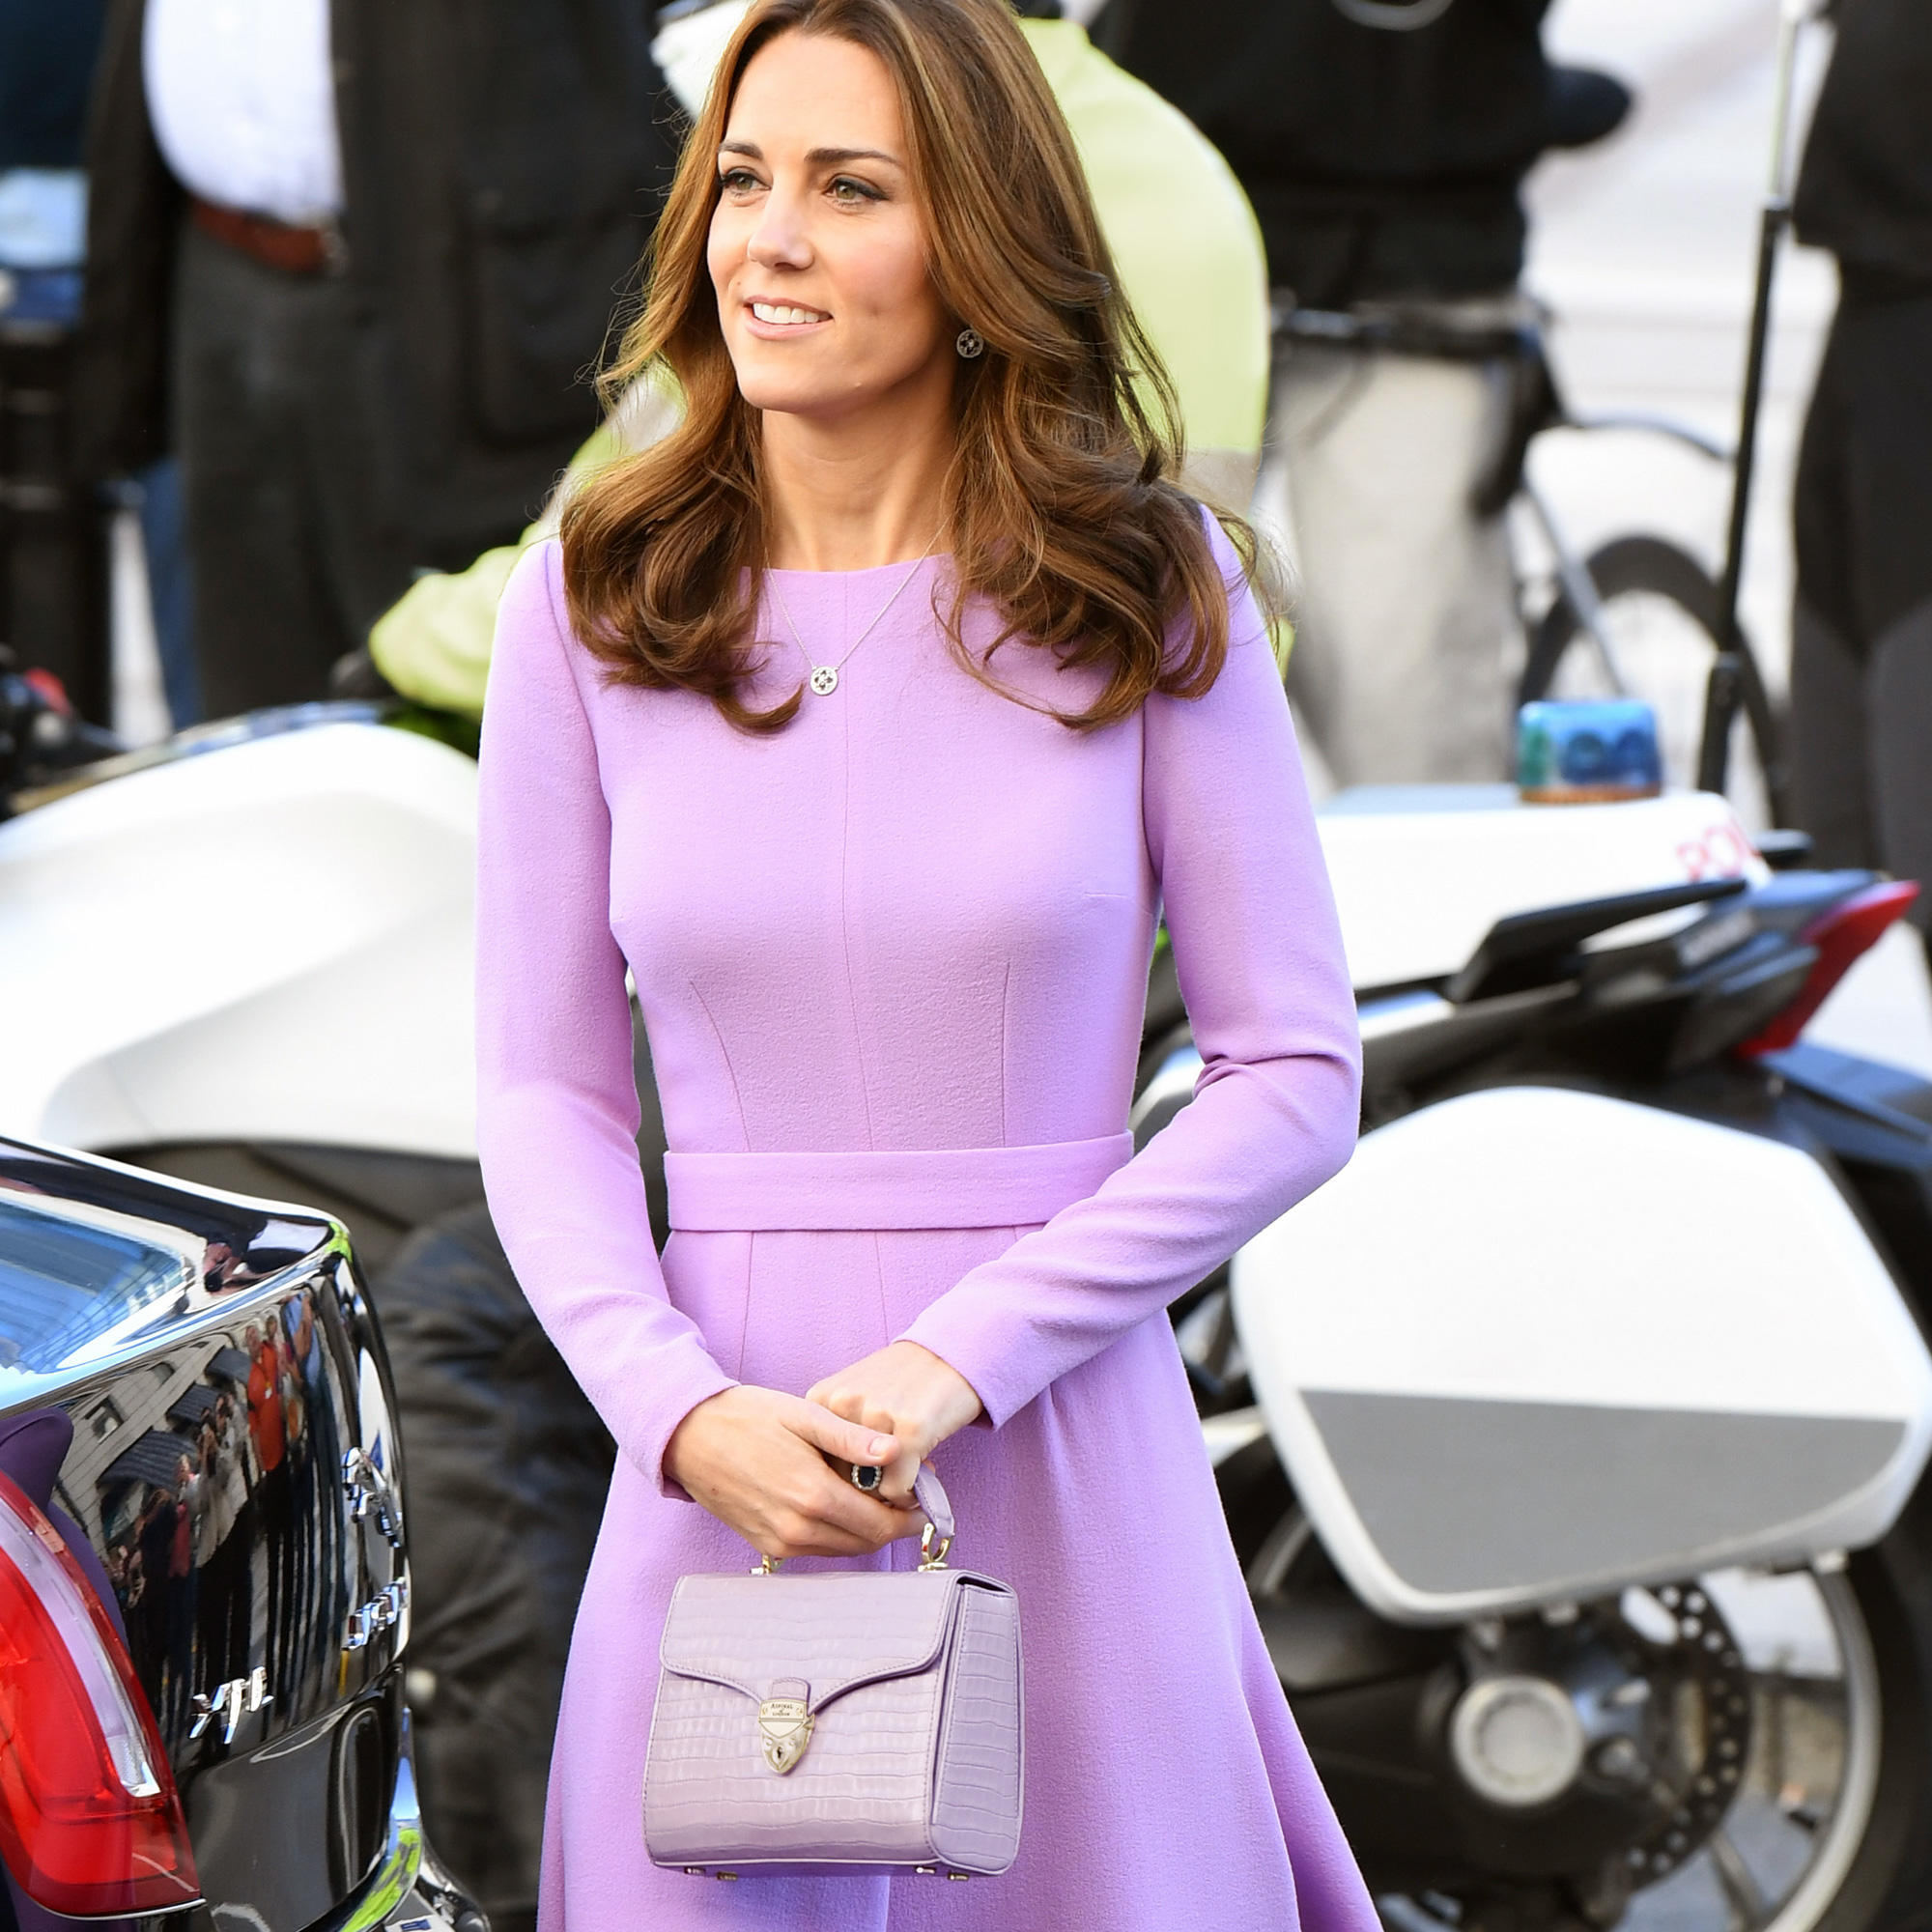 The Duchess of Cambridge in lavender Emilia Wickstead dress and carrying Aspinal of London Lavender bag